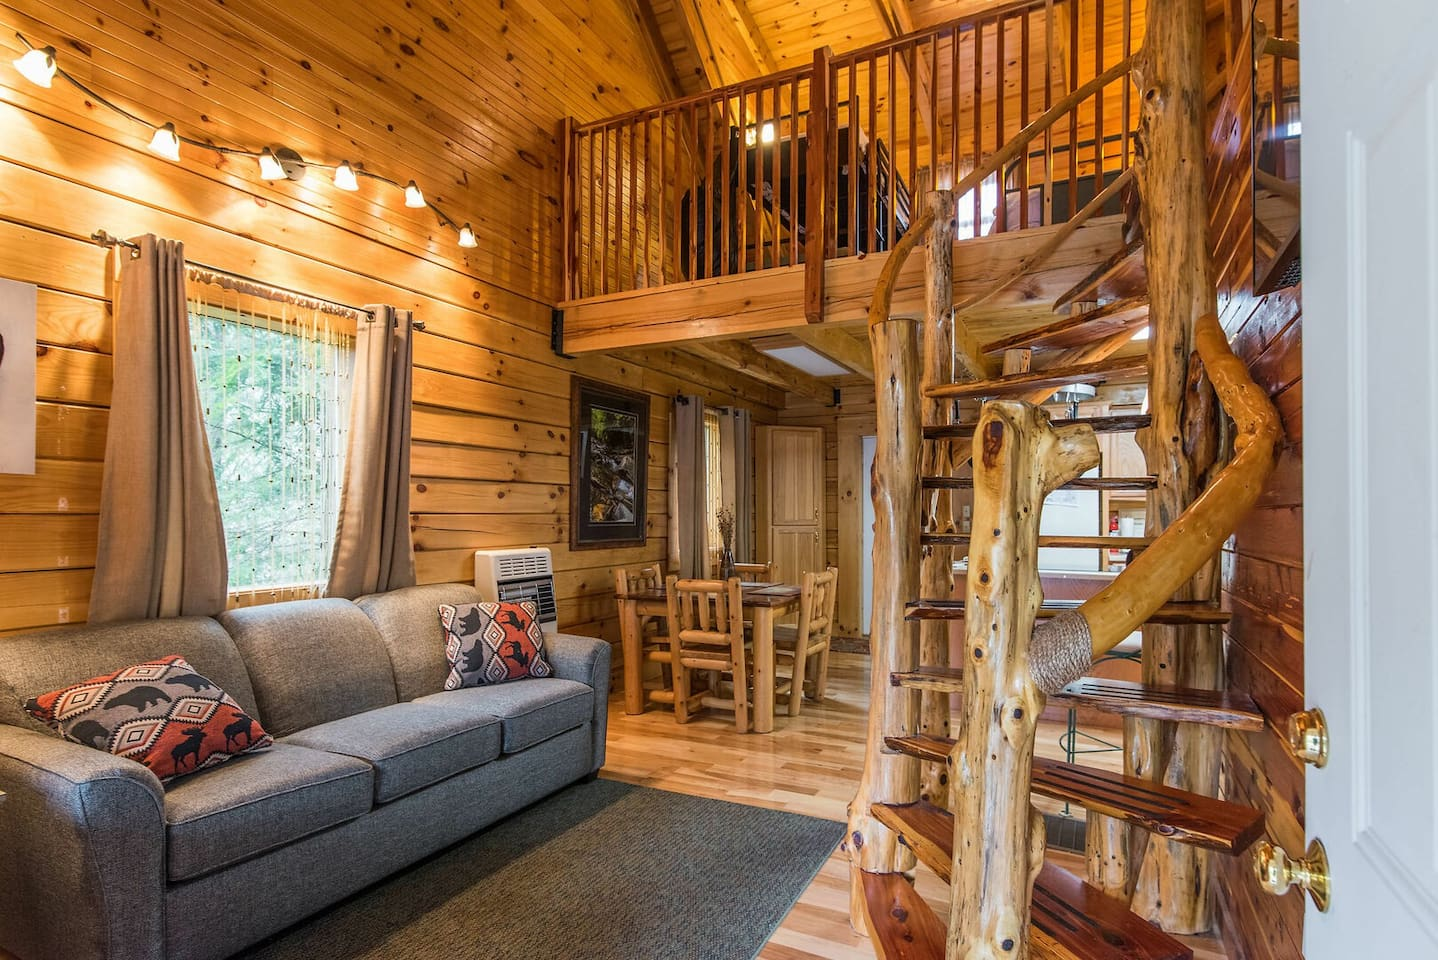 This is another view of the hand-crafted cedar staircase connected to the living room and kitchen